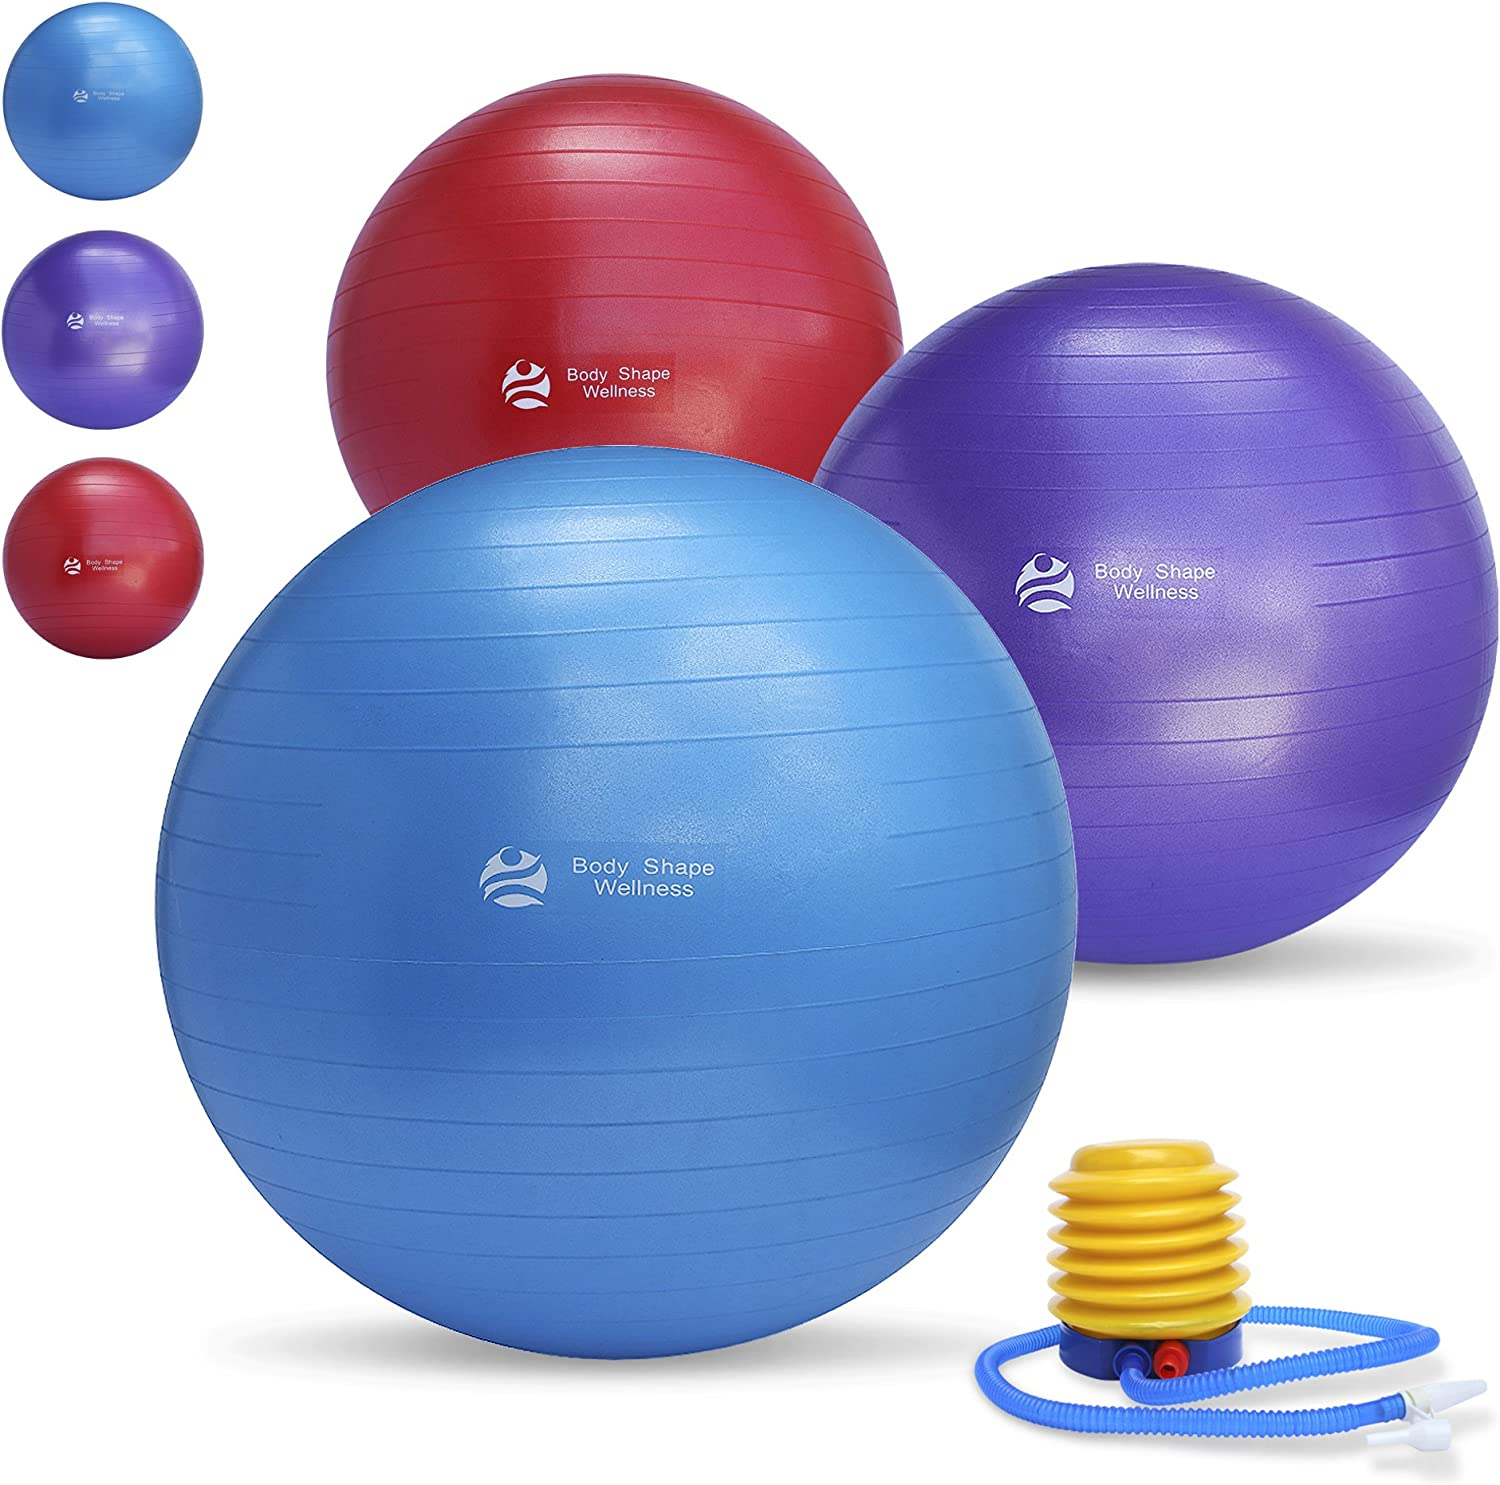 Exercise Ball Chair Multiple Sizes For Fitness, Stability, Gym, Balance Yoga – Professional Quality Anti-Burst Extra Thick Fitness Ball – Great for Pilates, Abdominal Workout and Office Chair.